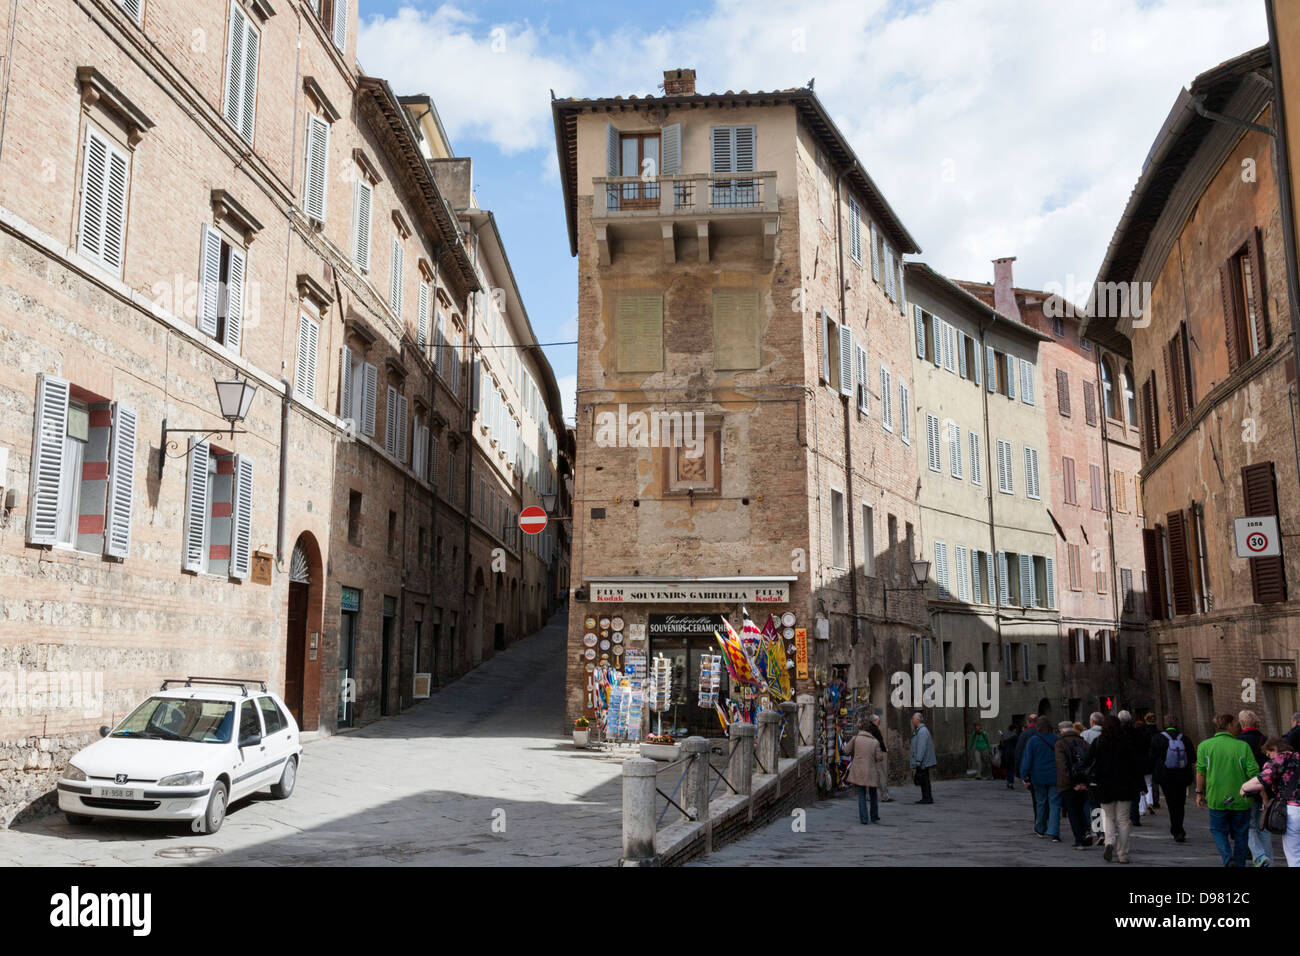 Streets in the medieval centre of Siena, Tuscany, Italy - Stock Image